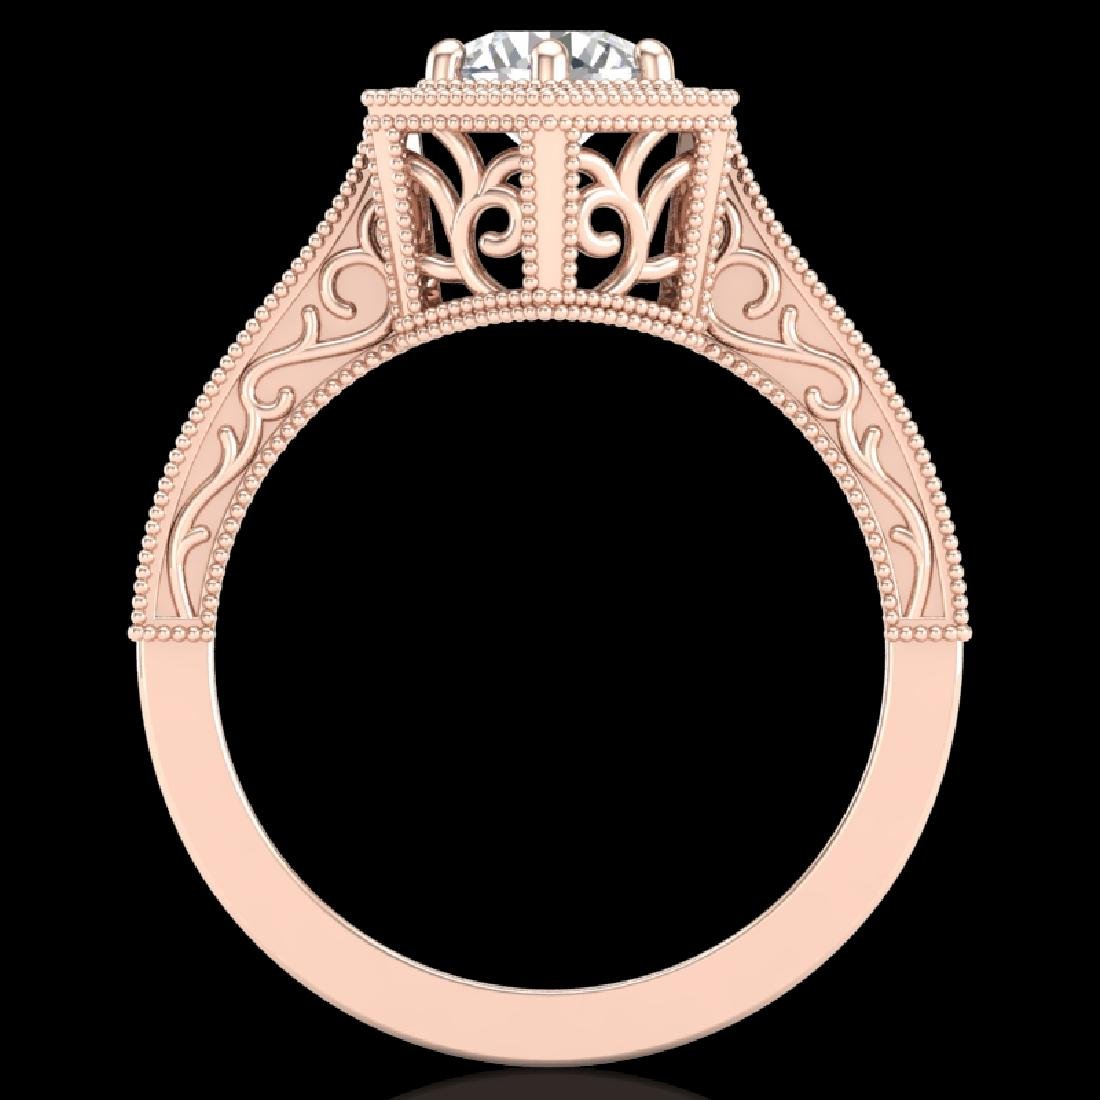 0.77 CTW VS/SI Diamond Solitaire Art Deco Ring 18K Rose